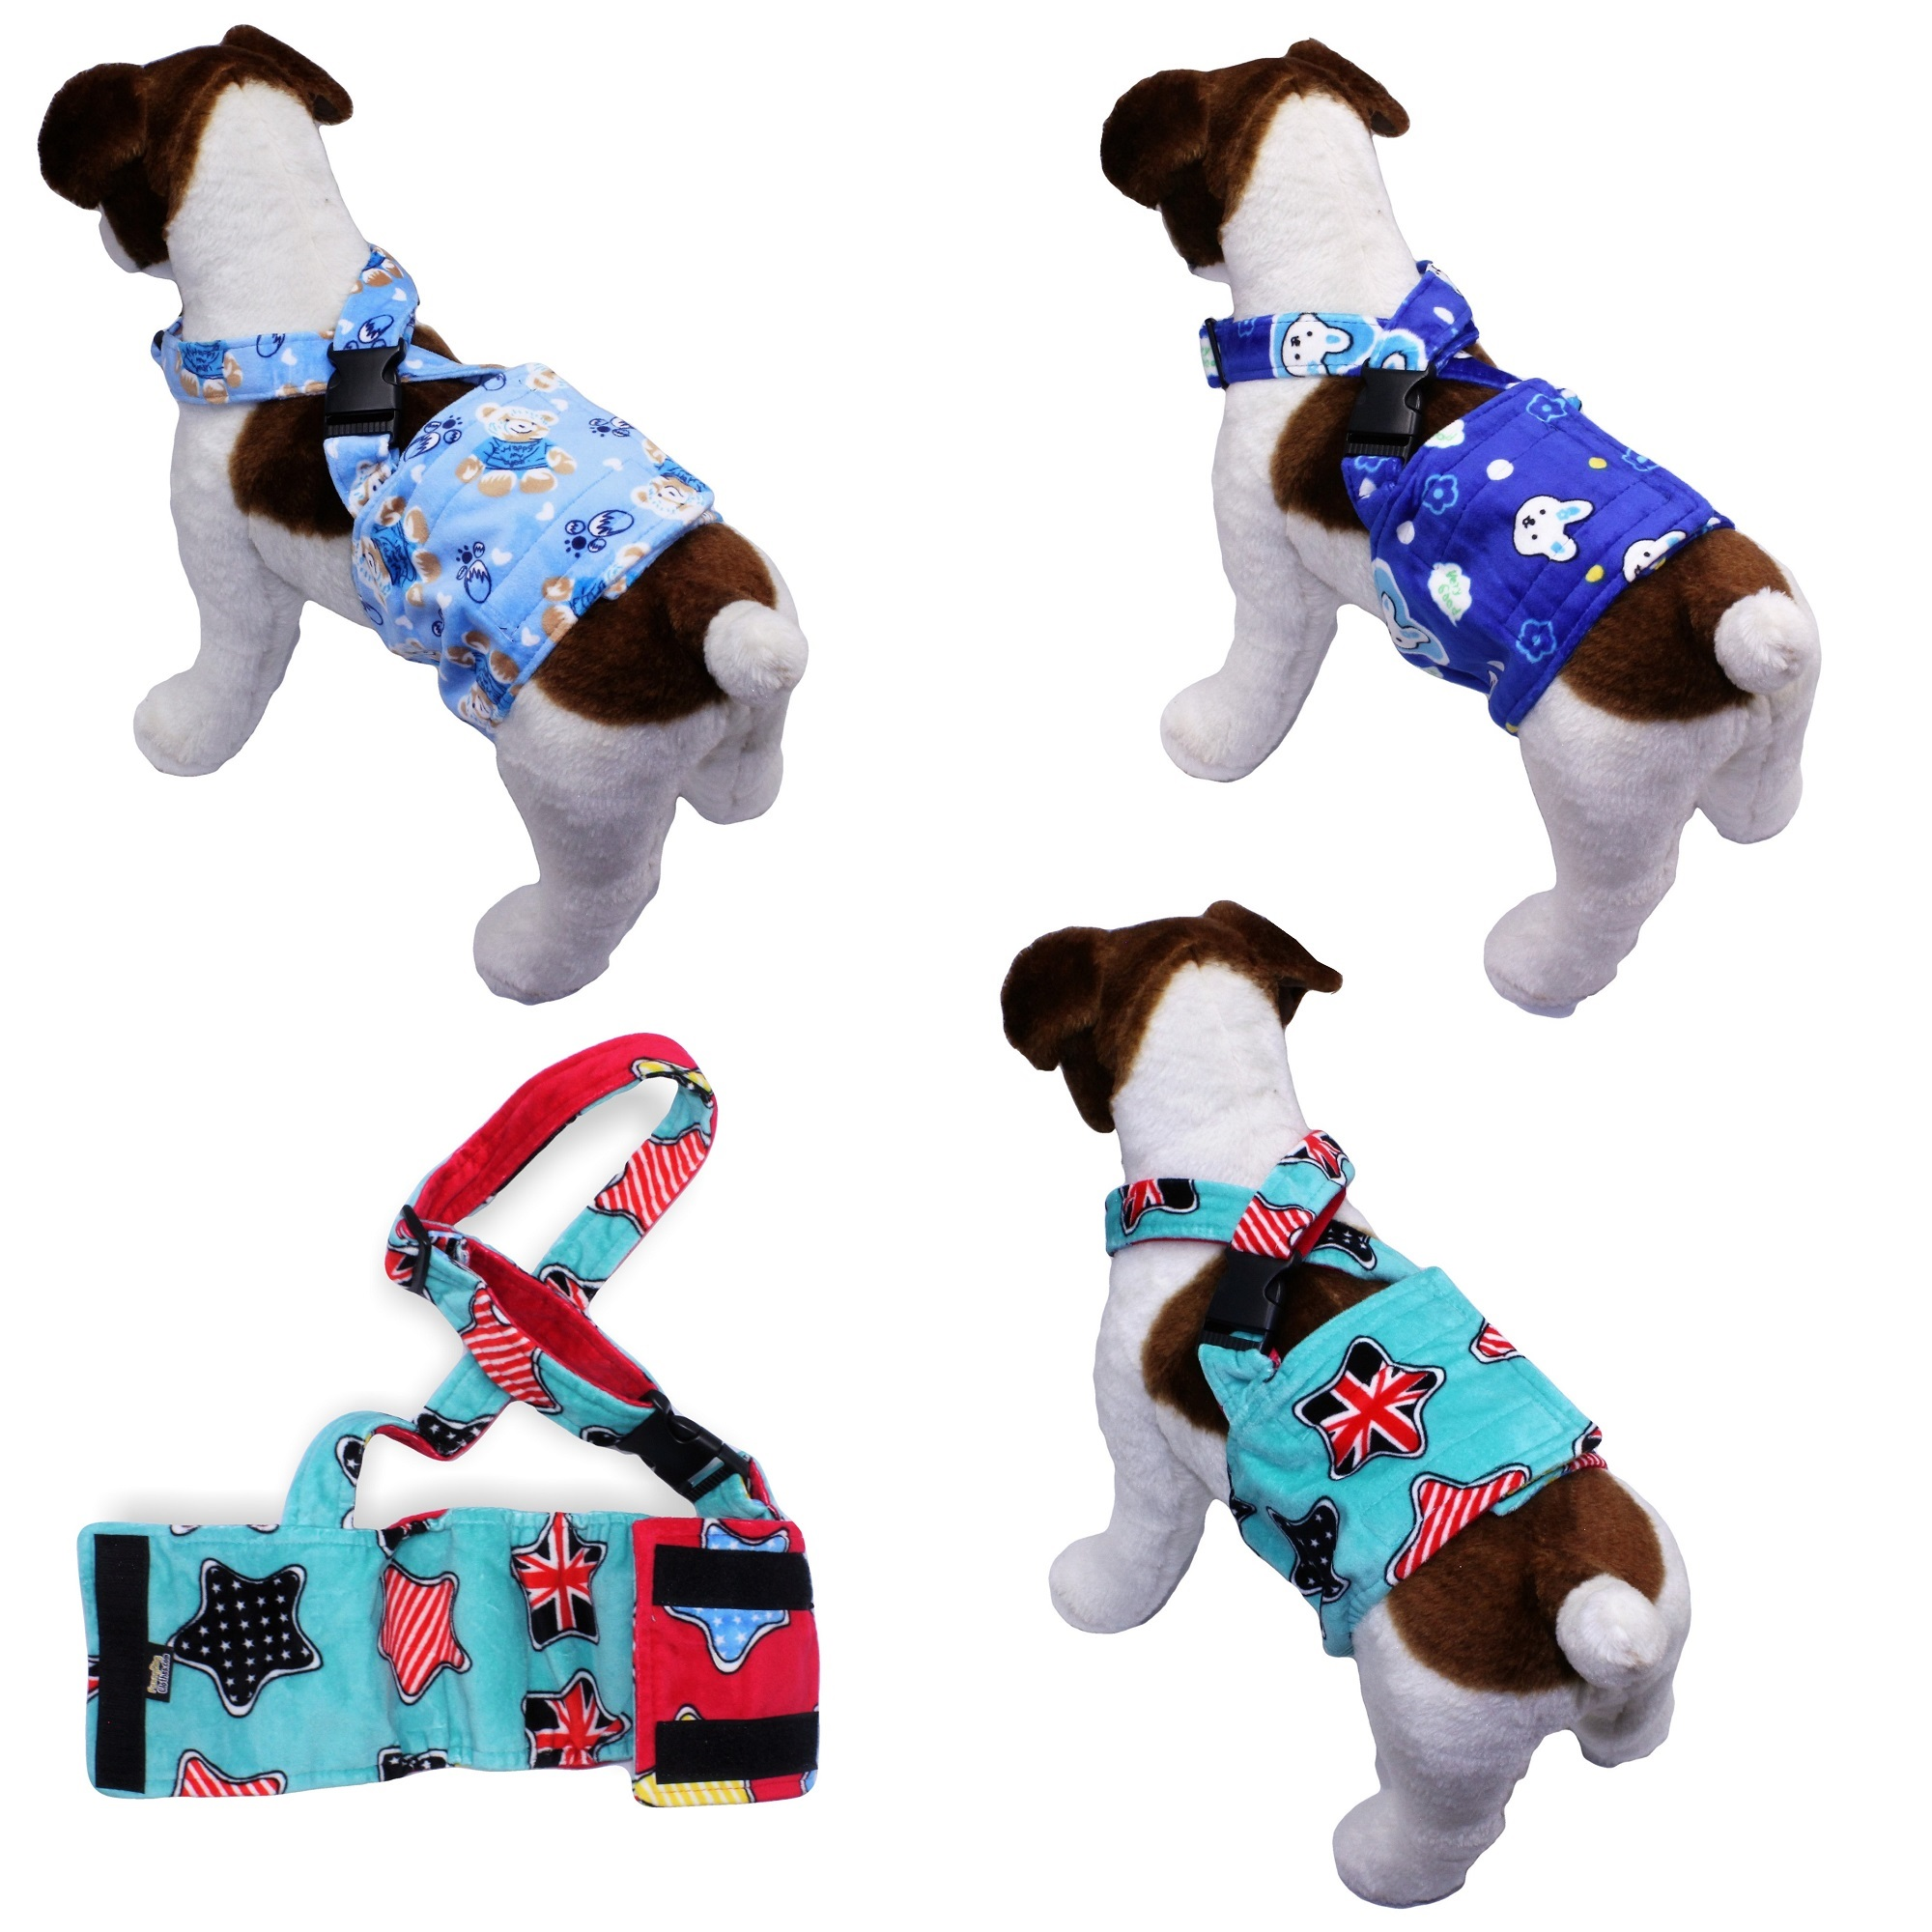 "WASHABLE Dog Diaper for MALE Boy FLEECE Belly Band Reusable with SUSPENDER size X-Small (waist: 8"" - 10"") BEAR - Blue"